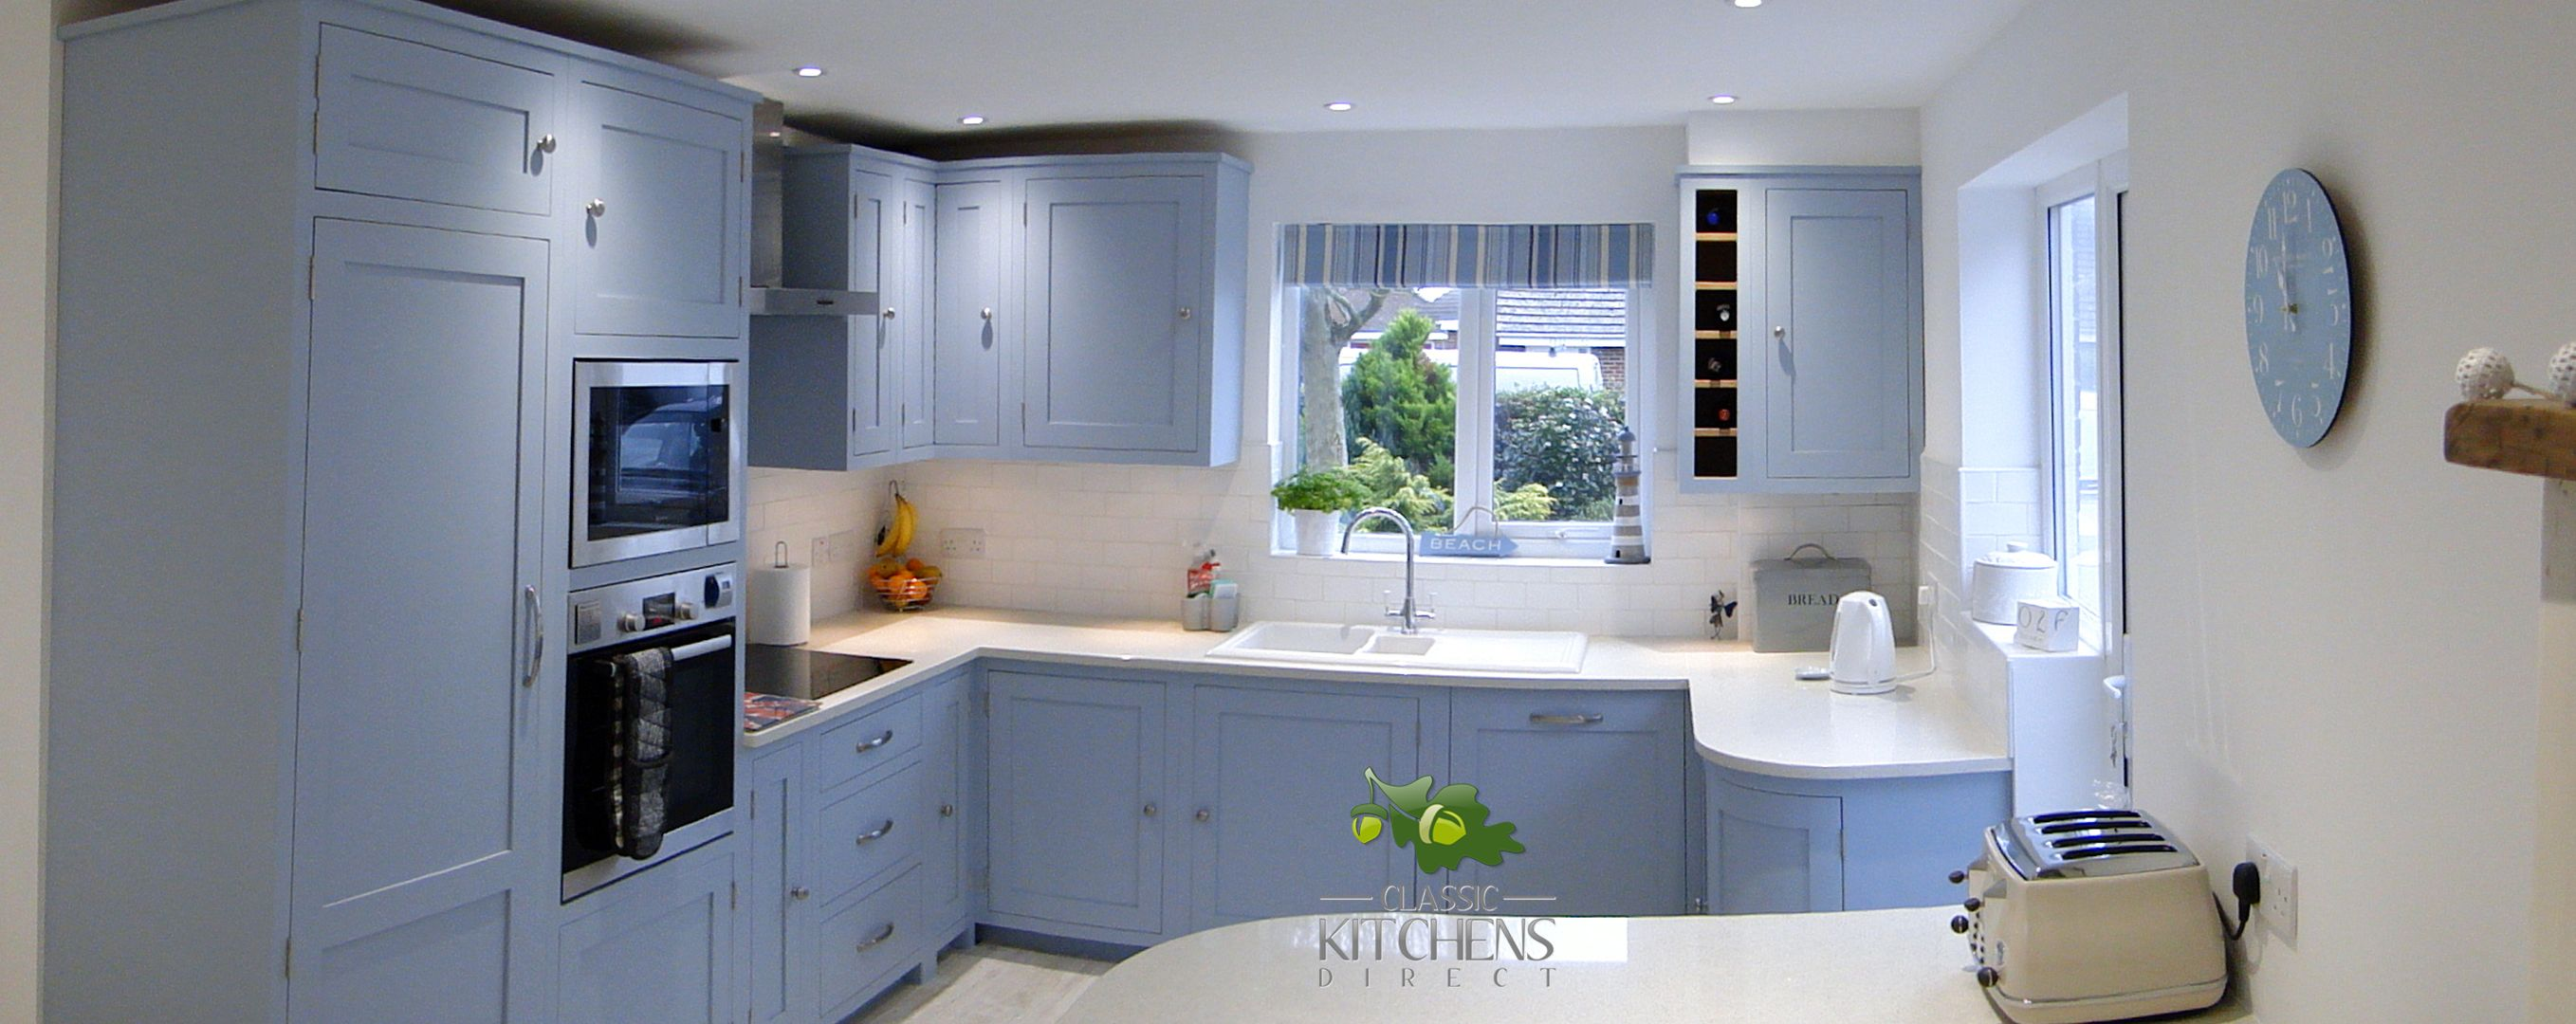 A lovely example of our handmade kitchens #handmade #